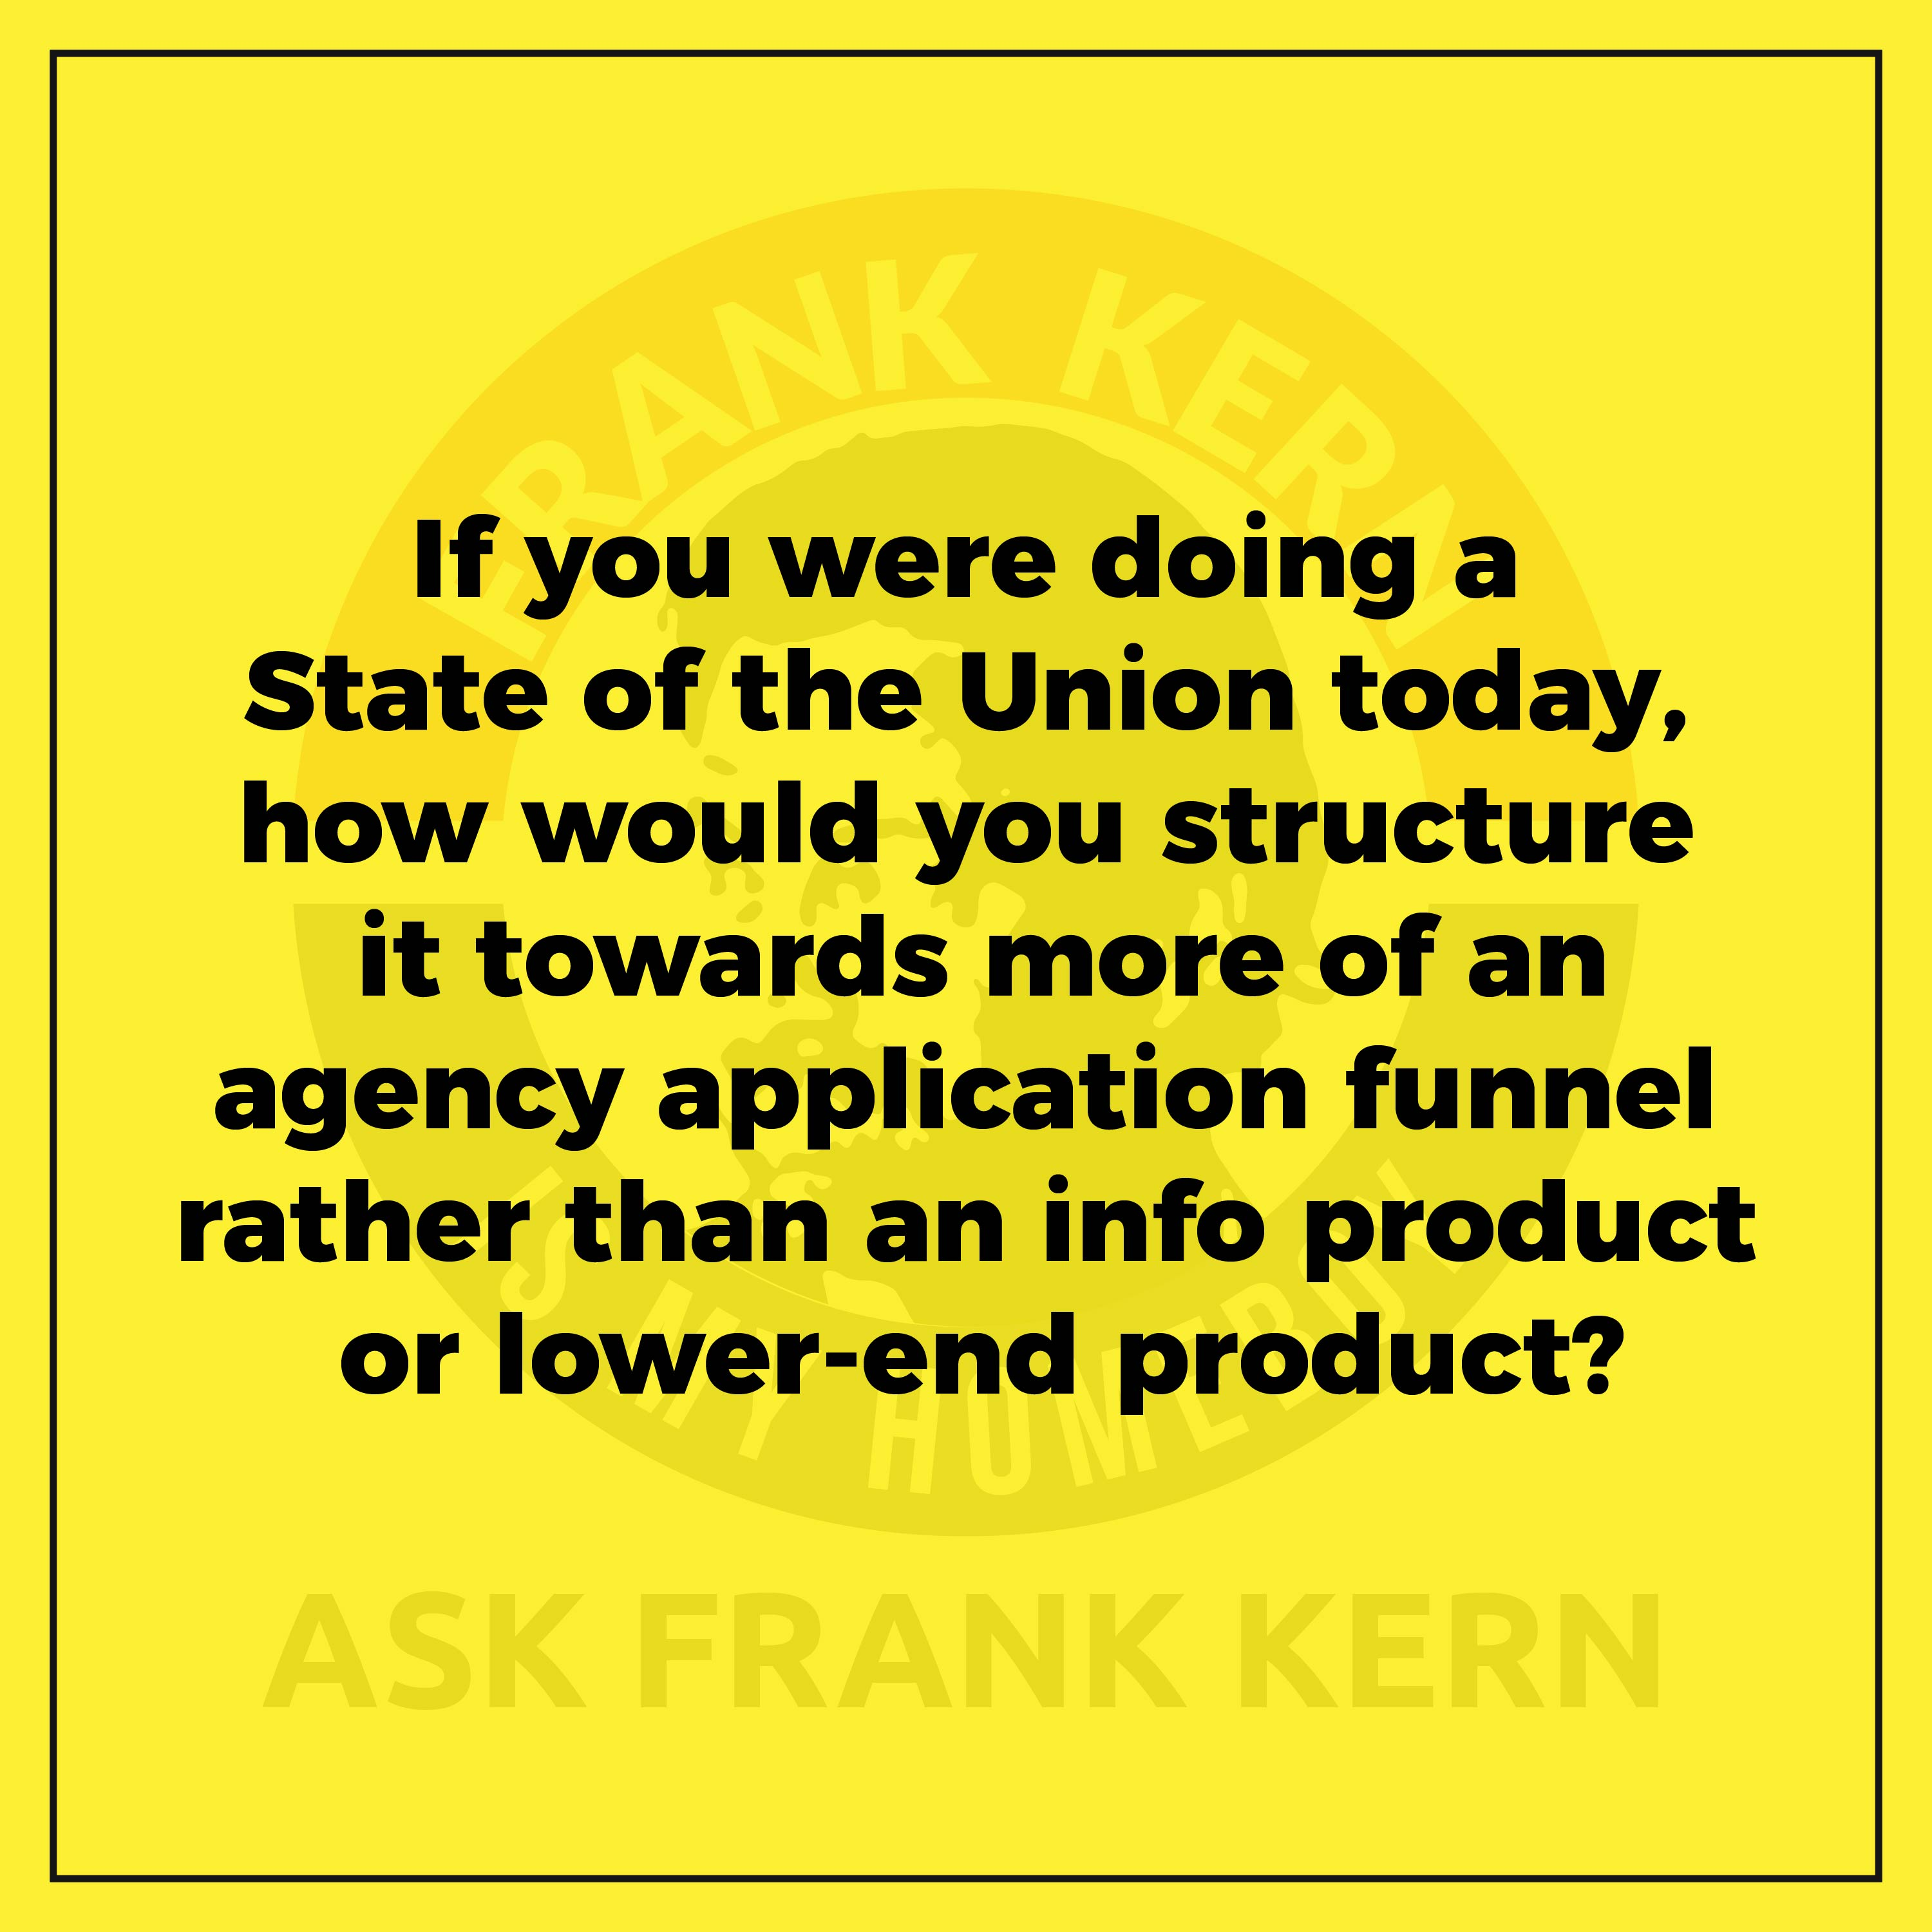 If you were doing a State of the Union today, how would you structure it towards more of an agency application funnel rather than an info product or lower-end product?